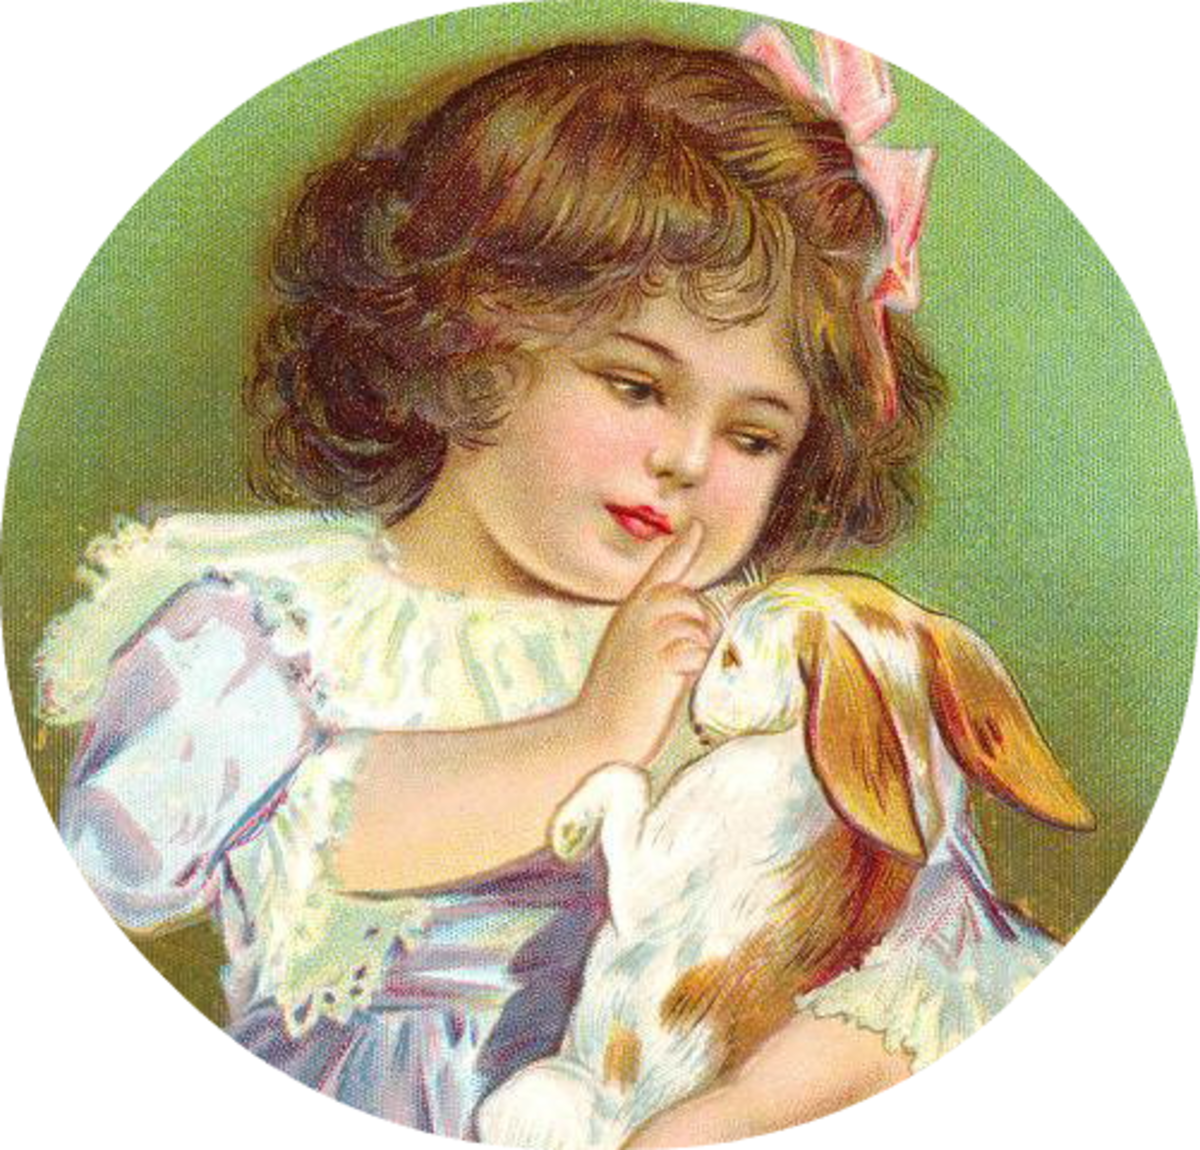 Vintage Easter images: Little girl with Easter bunny